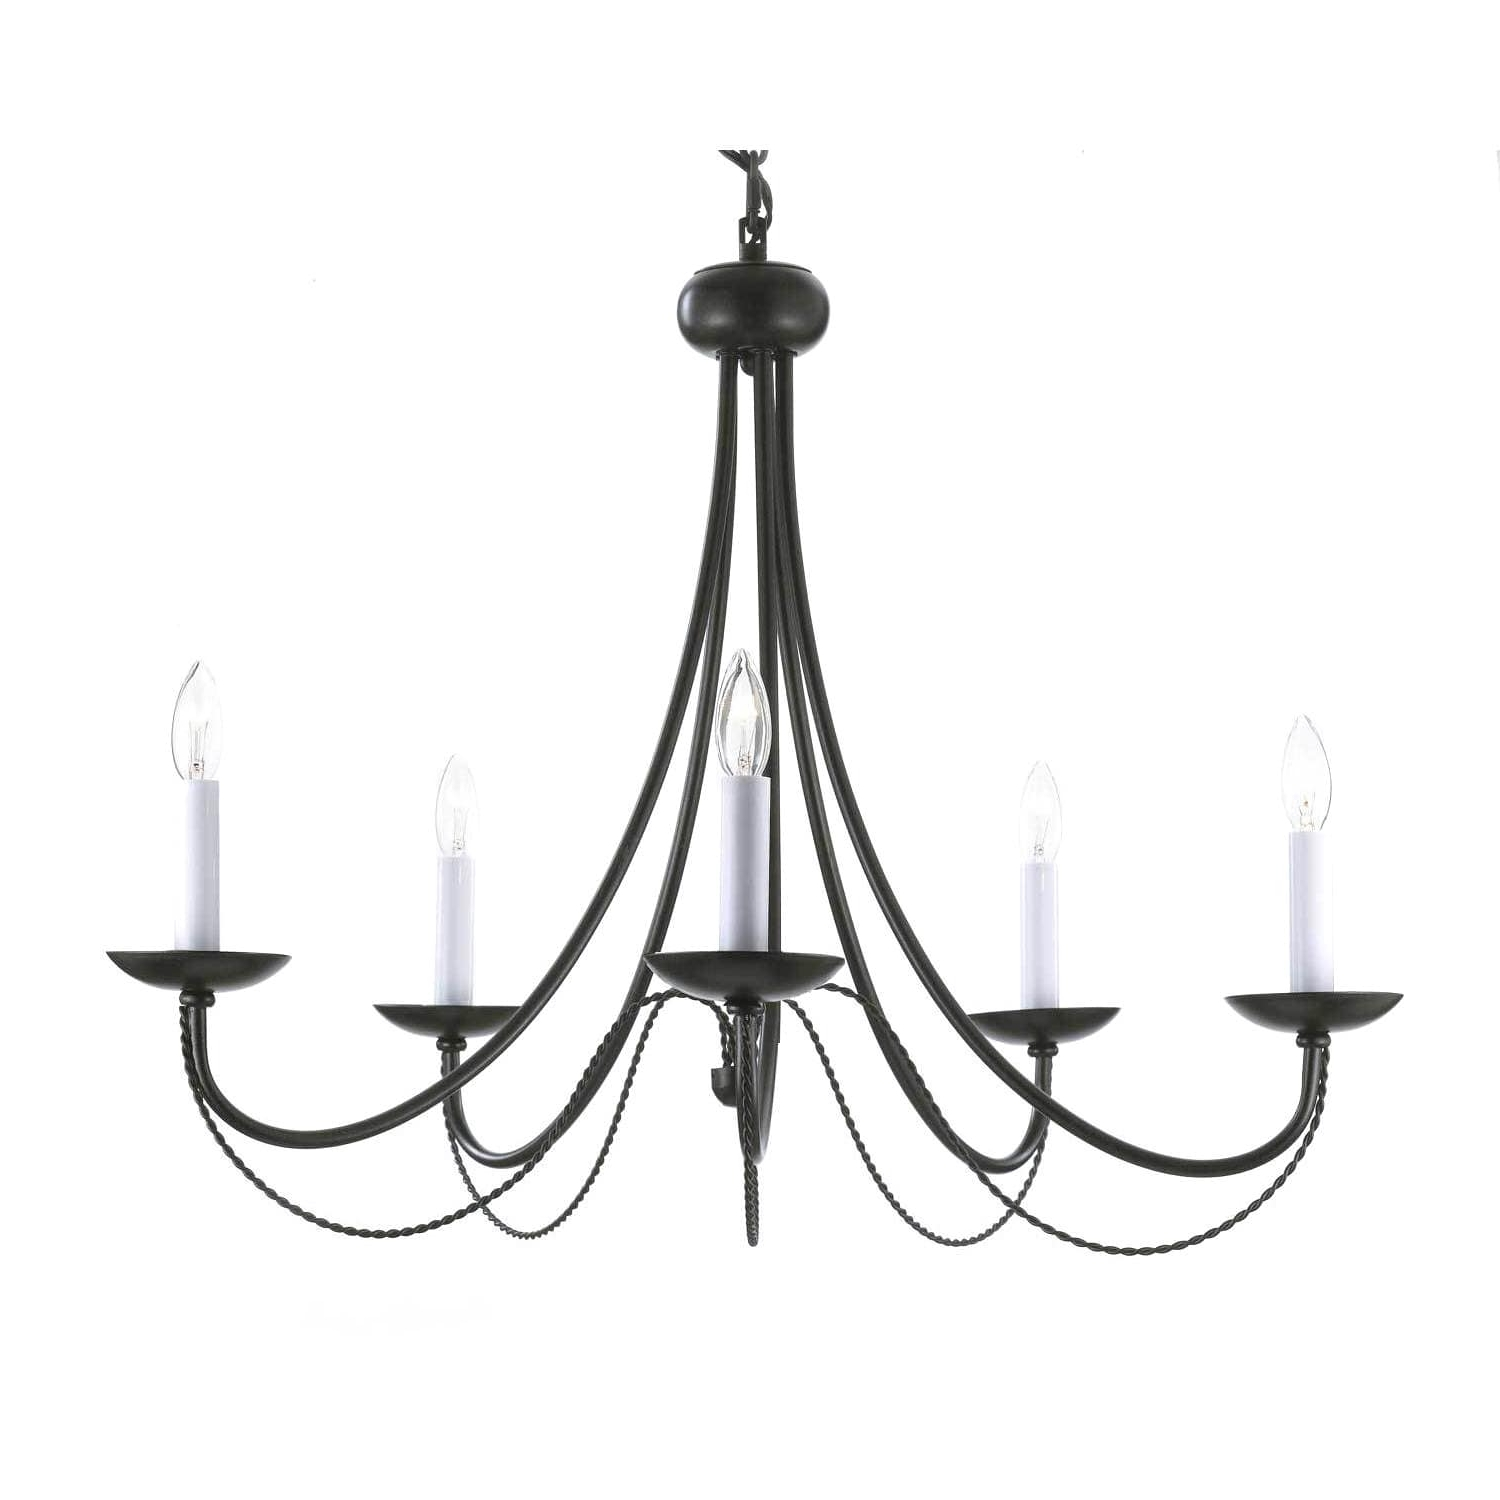 Iron Chandelier Intended For Most Up To Date Gallery Versailles 5 Light Black Wrought Iron Chandelier – Free (View 8 of 20)